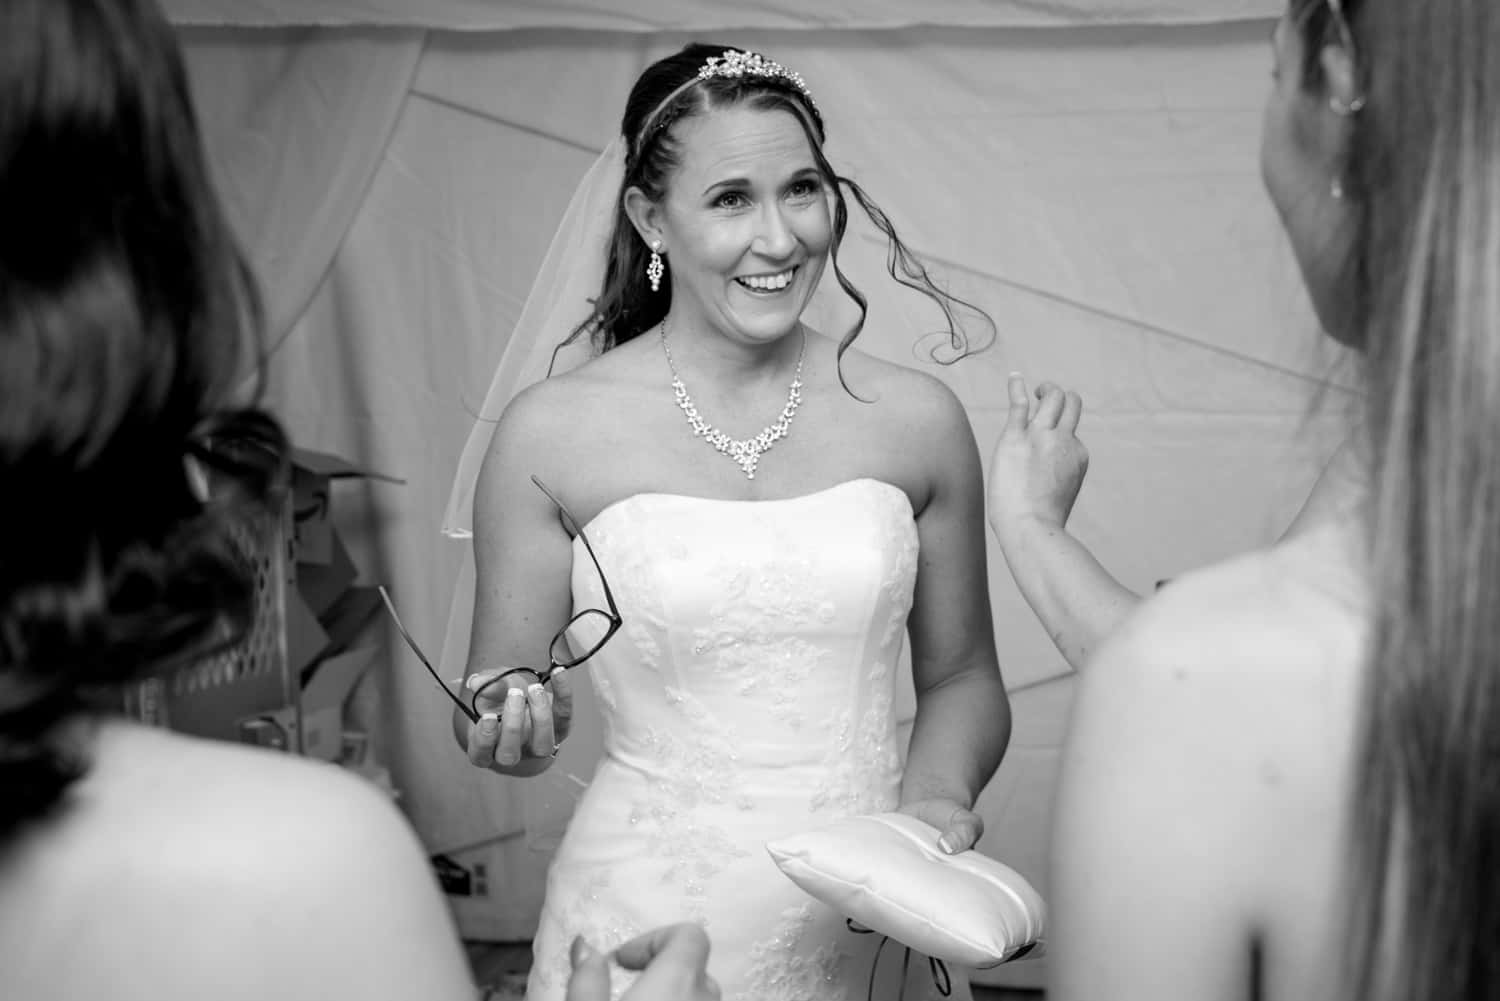 Bride wearing a white wedding dress holds her glasses in her left hand and a pillow in the other while looking at her bridesmaids.